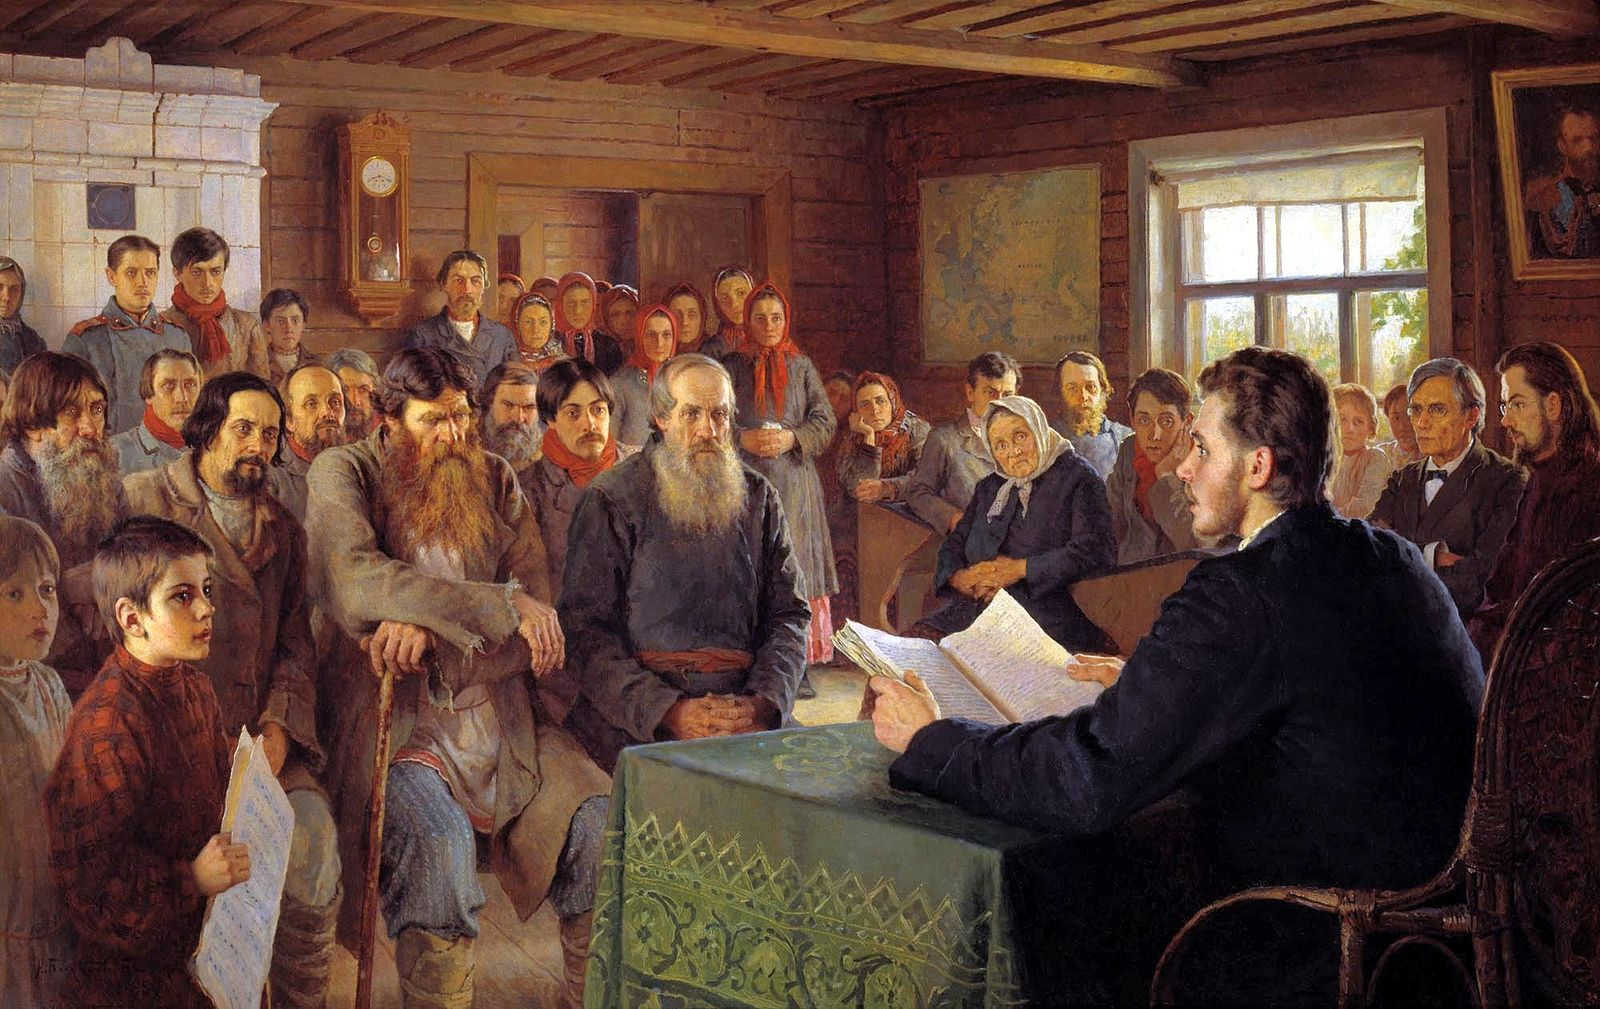 English: Sunday Reading in Rural Schools. Oil on canvas. The State Russian Museum, St. Petersburg Date 1895 Nikolay Petrovich Bogdanov-Belsky was a Russian painter. He was born in the village of Shitiki in Smolensk Governorate in 1868. He studied art at the Semyon Rachinsky fine art school, icon-painting at the Troitse-Sergiyeva Lavra in 1883, modern painting at the Moscow School of Painting, Sculpture and Architecture in 1884 to 1889, and at the Imperial Academy of Arts in St. Petersburg…